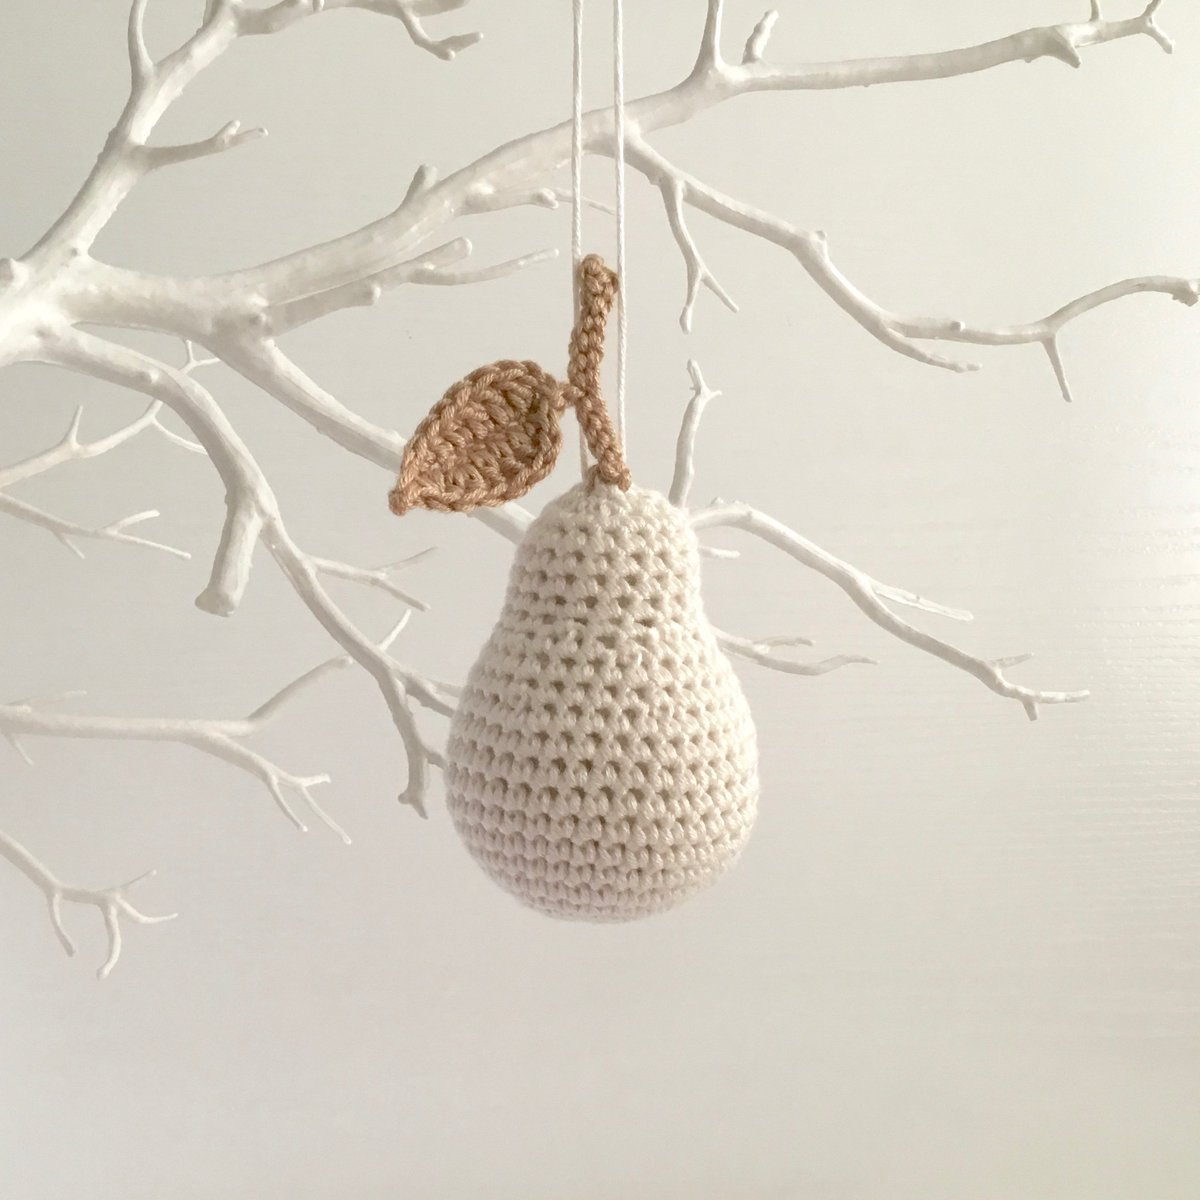 Ornaments for the changing seasons. Handmade in my #home, for your #home. #Crafthour  http://www. littleconkers.etsy.com  &nbsp;  <br>http://pic.twitter.com/wRbWgfoaMF